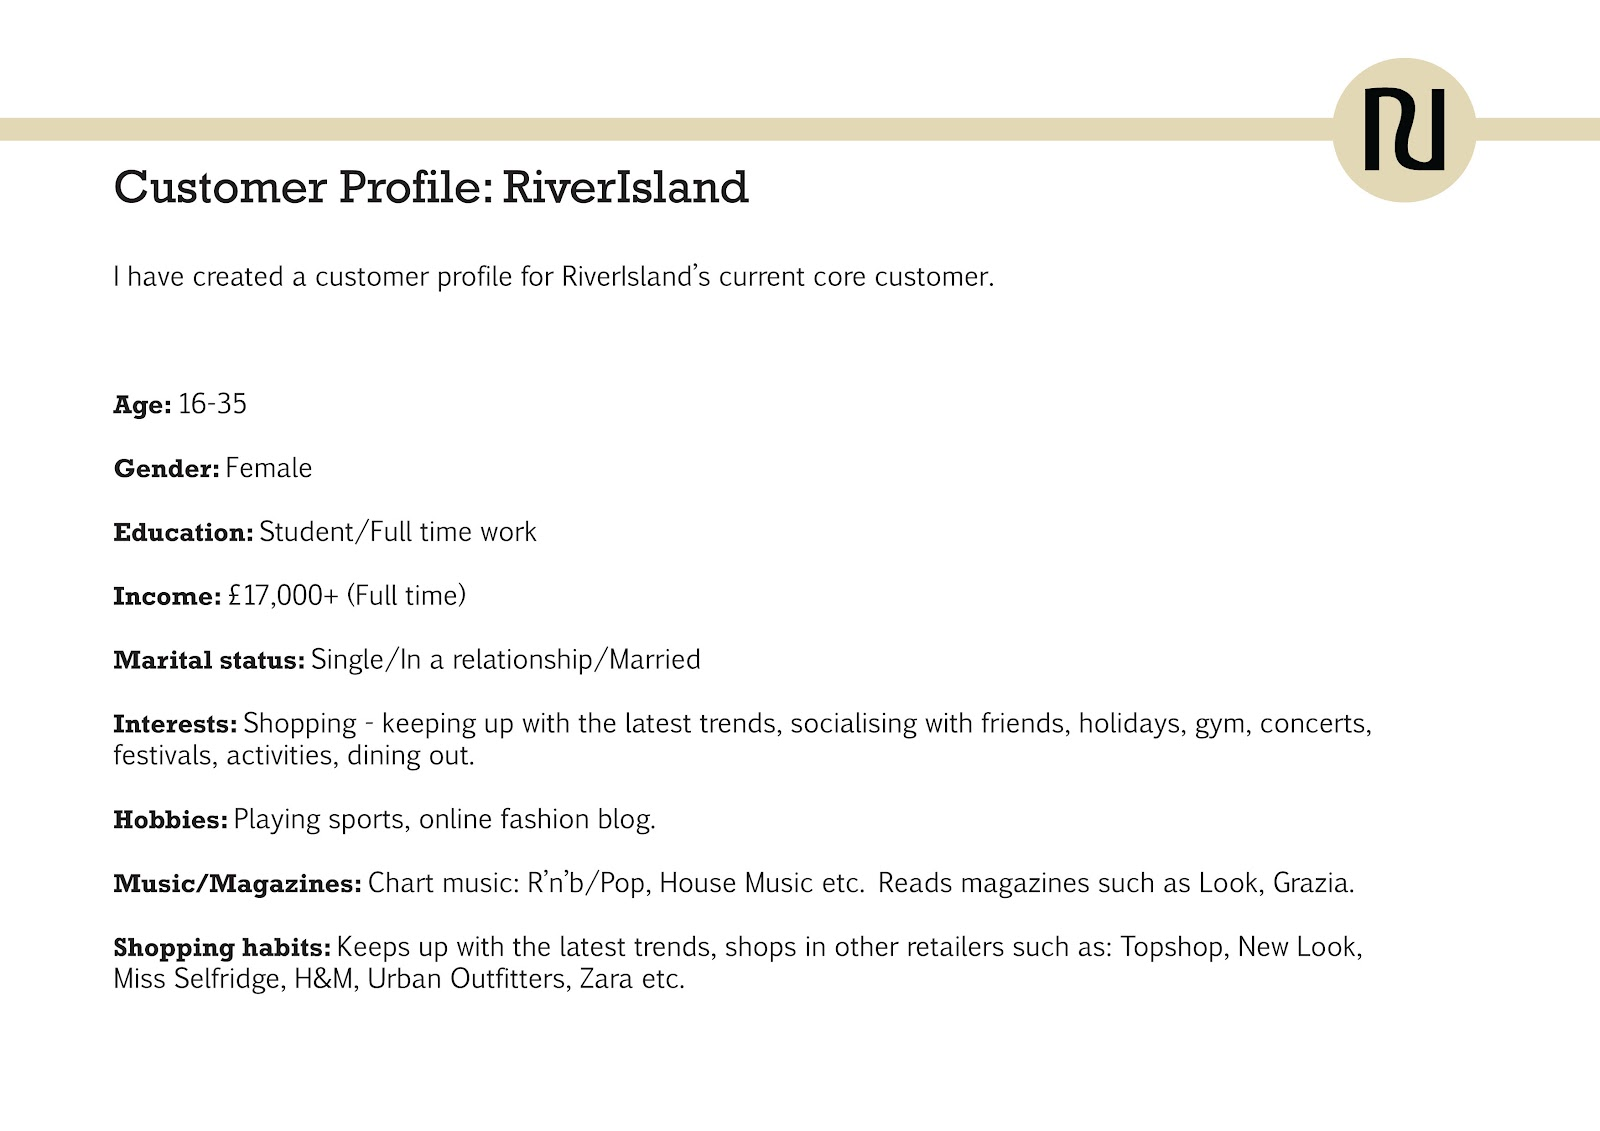 zara swot cover letter zara sample customer service resume learn  final major project through my eyes riverisland customer profile zara case study swot analysis